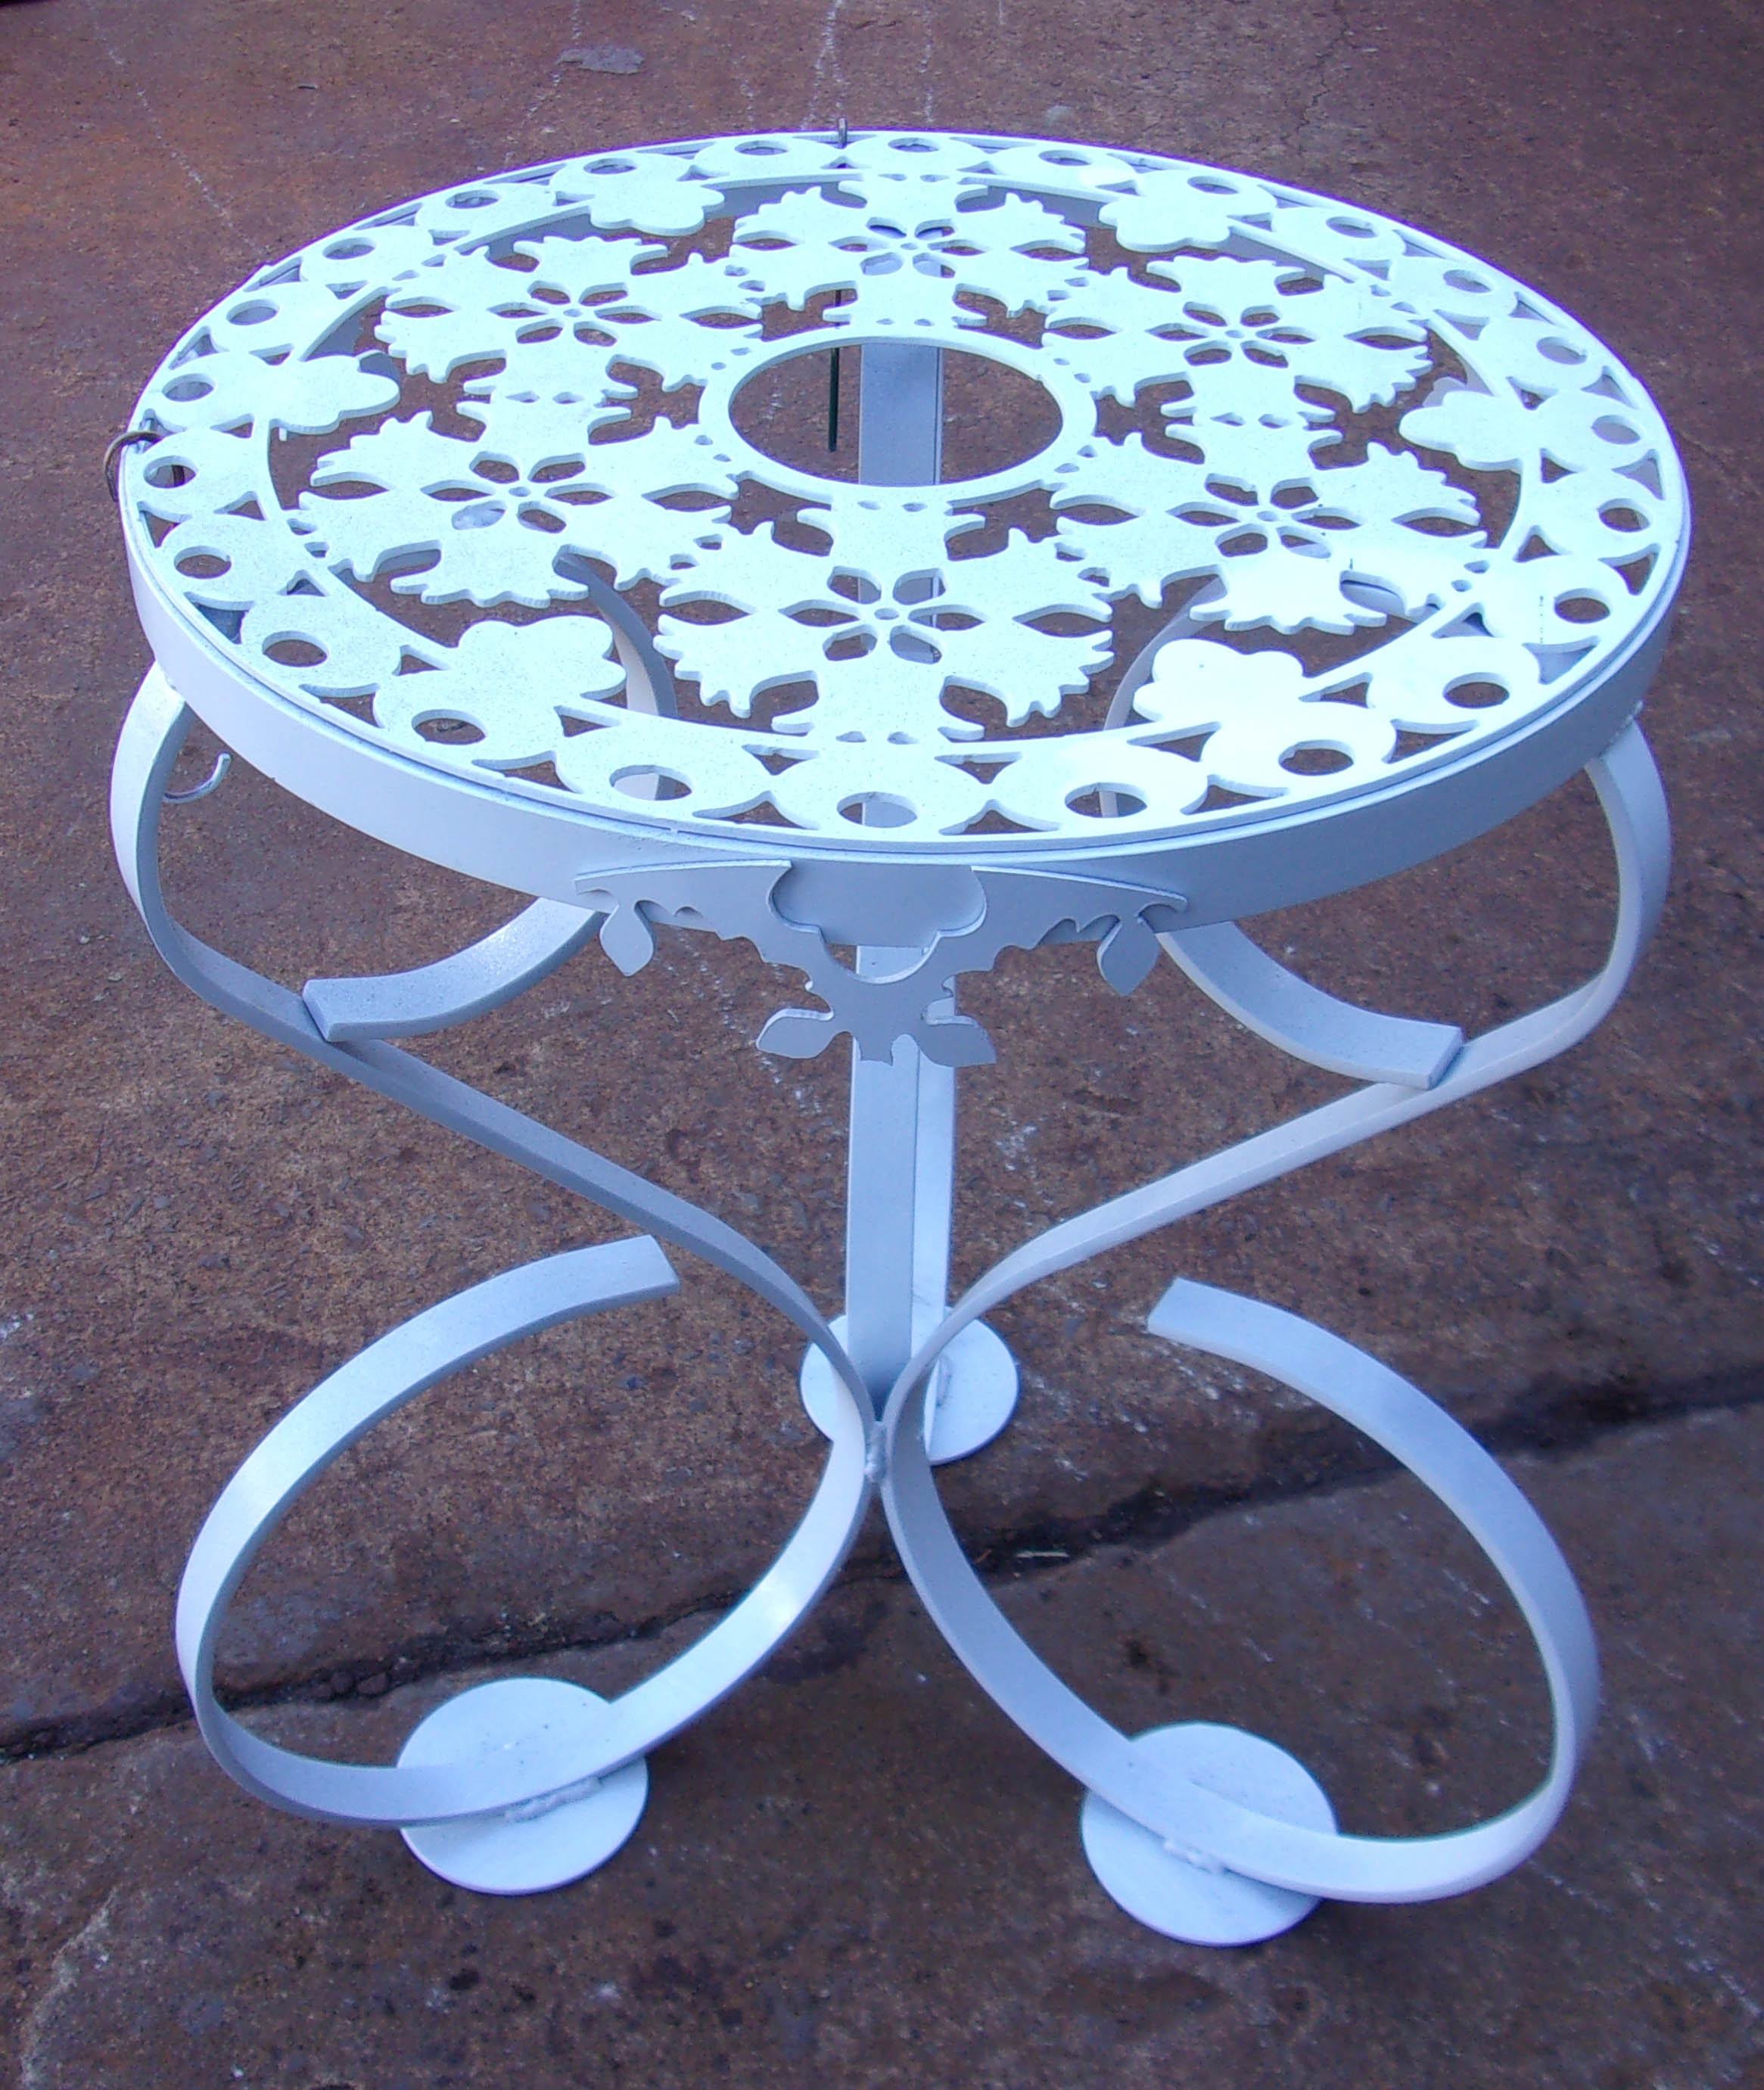 Click to enlarge,  This decorative table will be among the items up for bid at the Central Carolina Community College Foundation's 19th Annual Furniture Auction Saturday, June 1, in the Multipurpose Room of the Miriello Building on the college's Harnett County Campus, 1075 E. Cornelius Harnett Blvd. Viewing and registration starts at 9 a.m. and bidding at 10 a.m. For more information about the CCCC Foundation Furniture Auction, call 910-893-9101 or go online to www.cccc.edu/auction to see a photo gallery of the auction pieces.